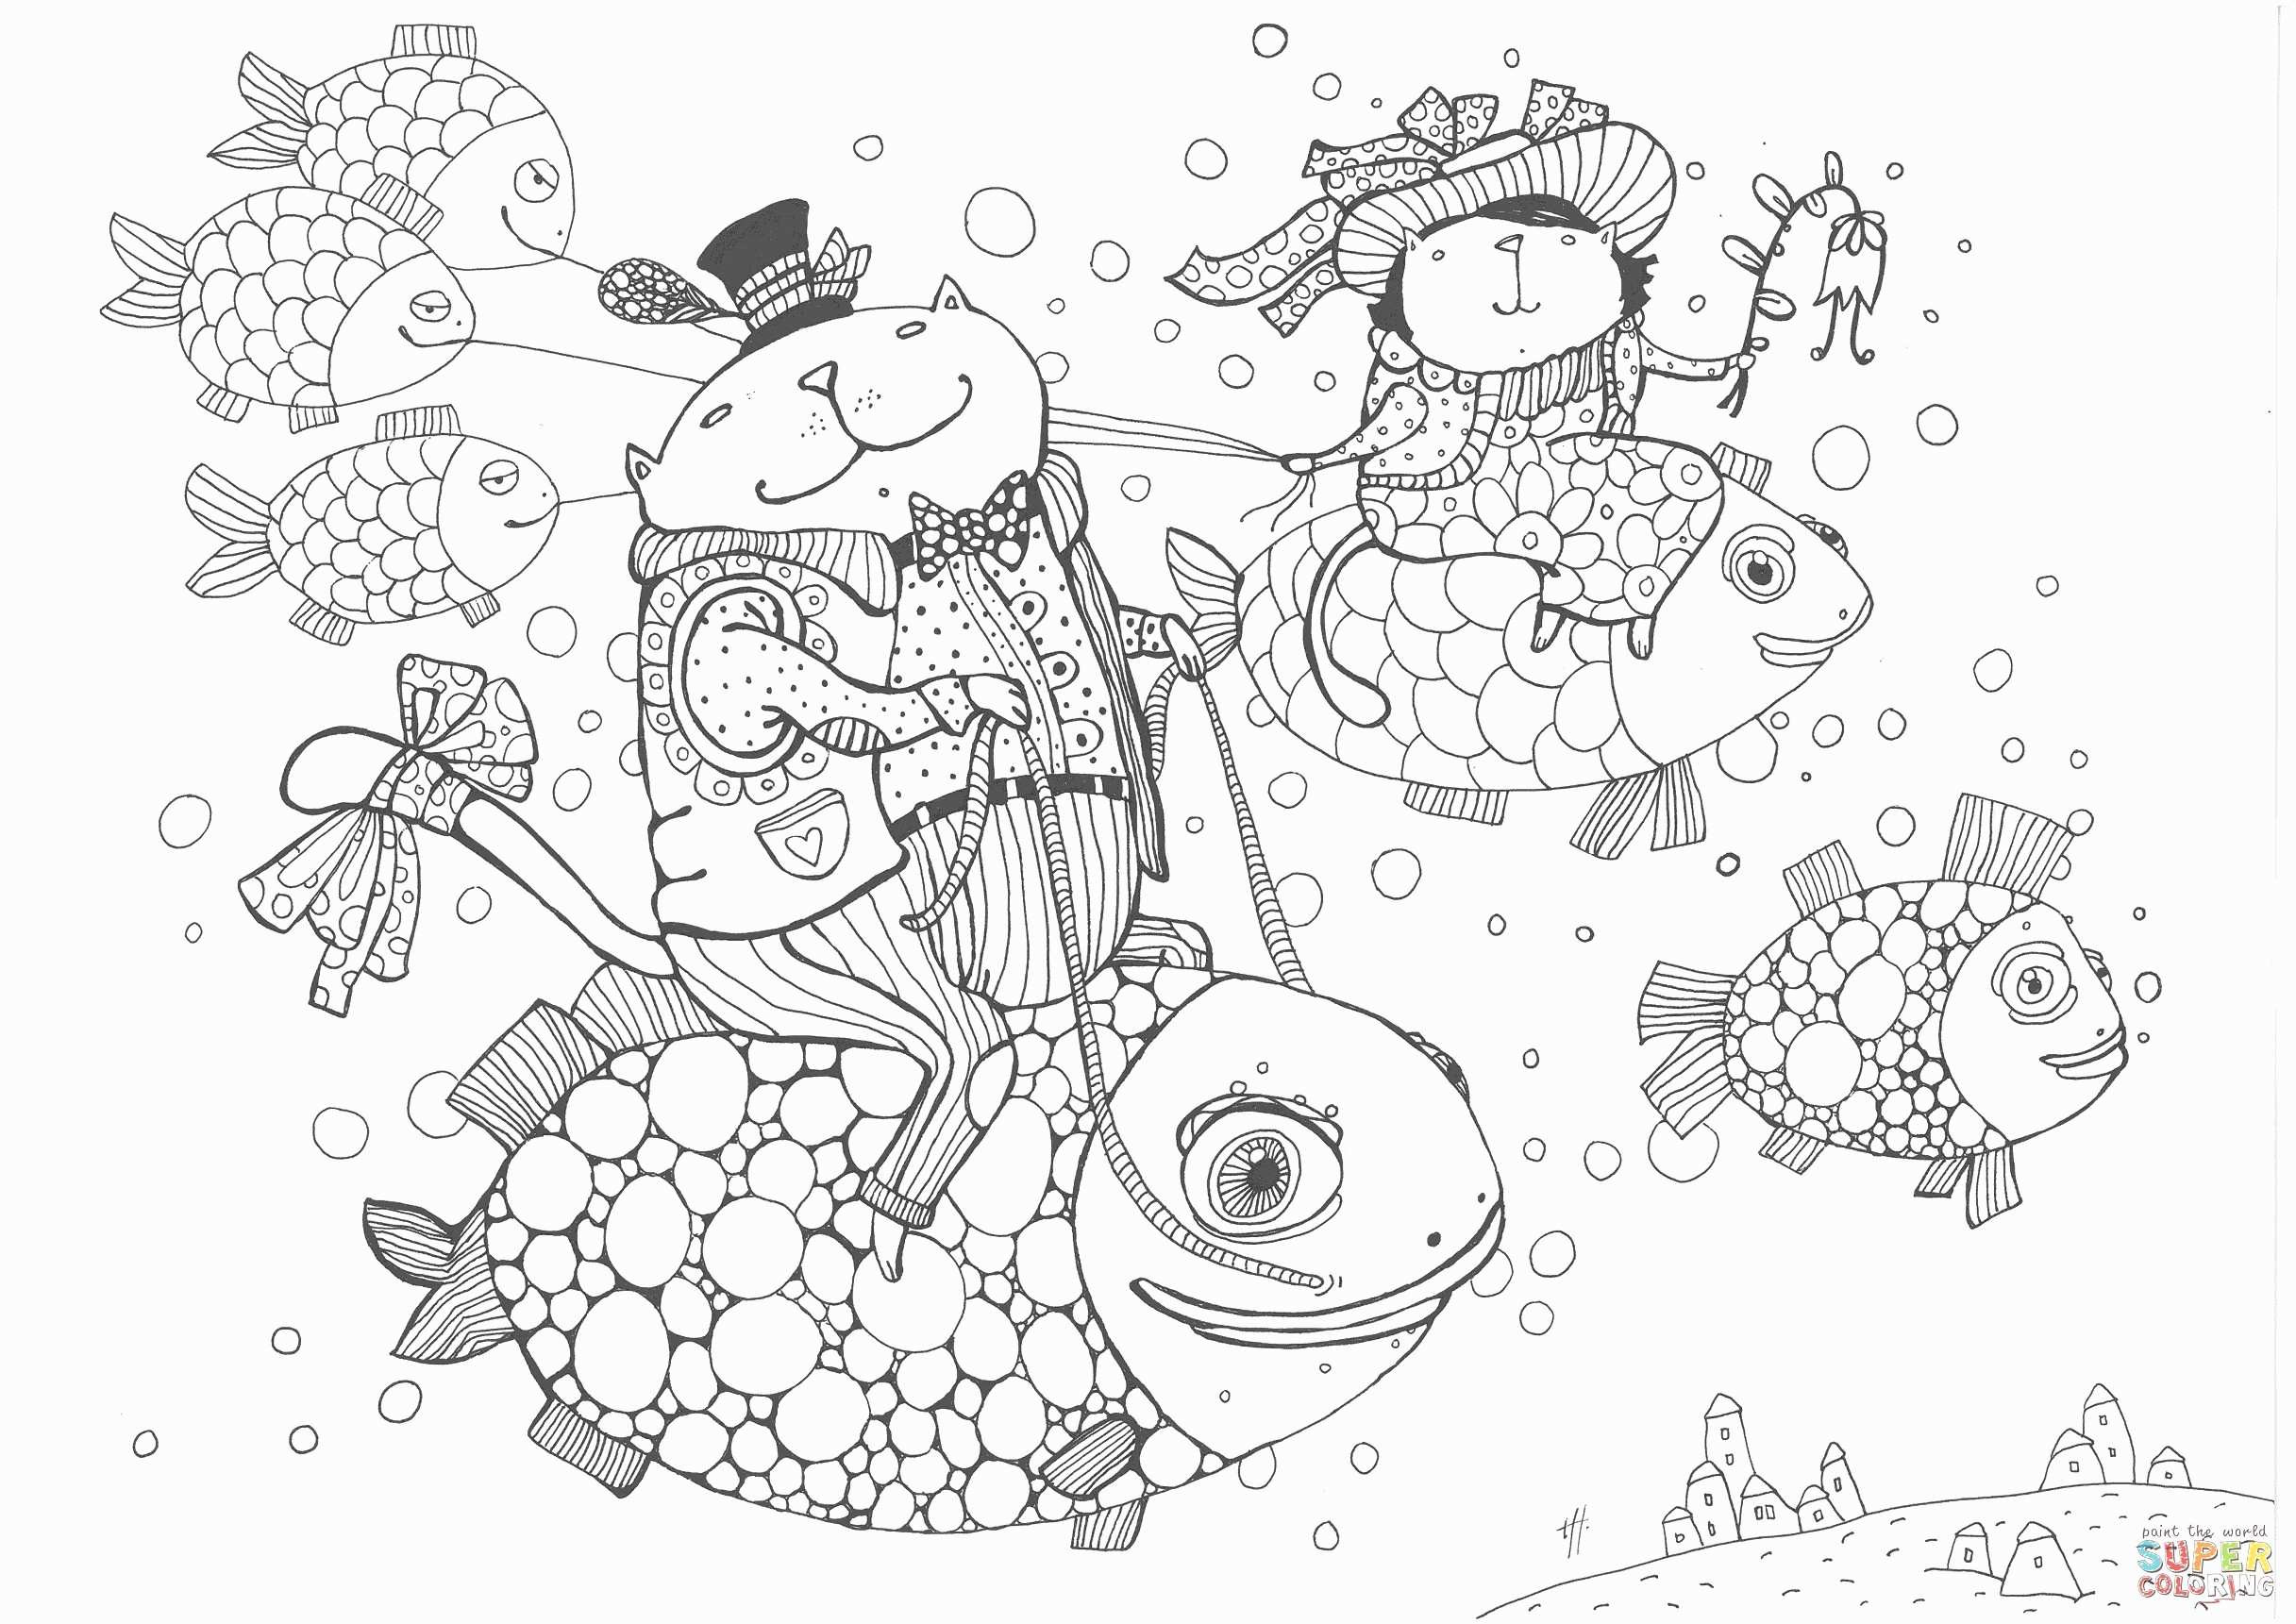 Earth day coloring pages clipart royalty free Coloring Pages : Earth Day Coloring Pages Kindergarten Images Clip ... royalty free